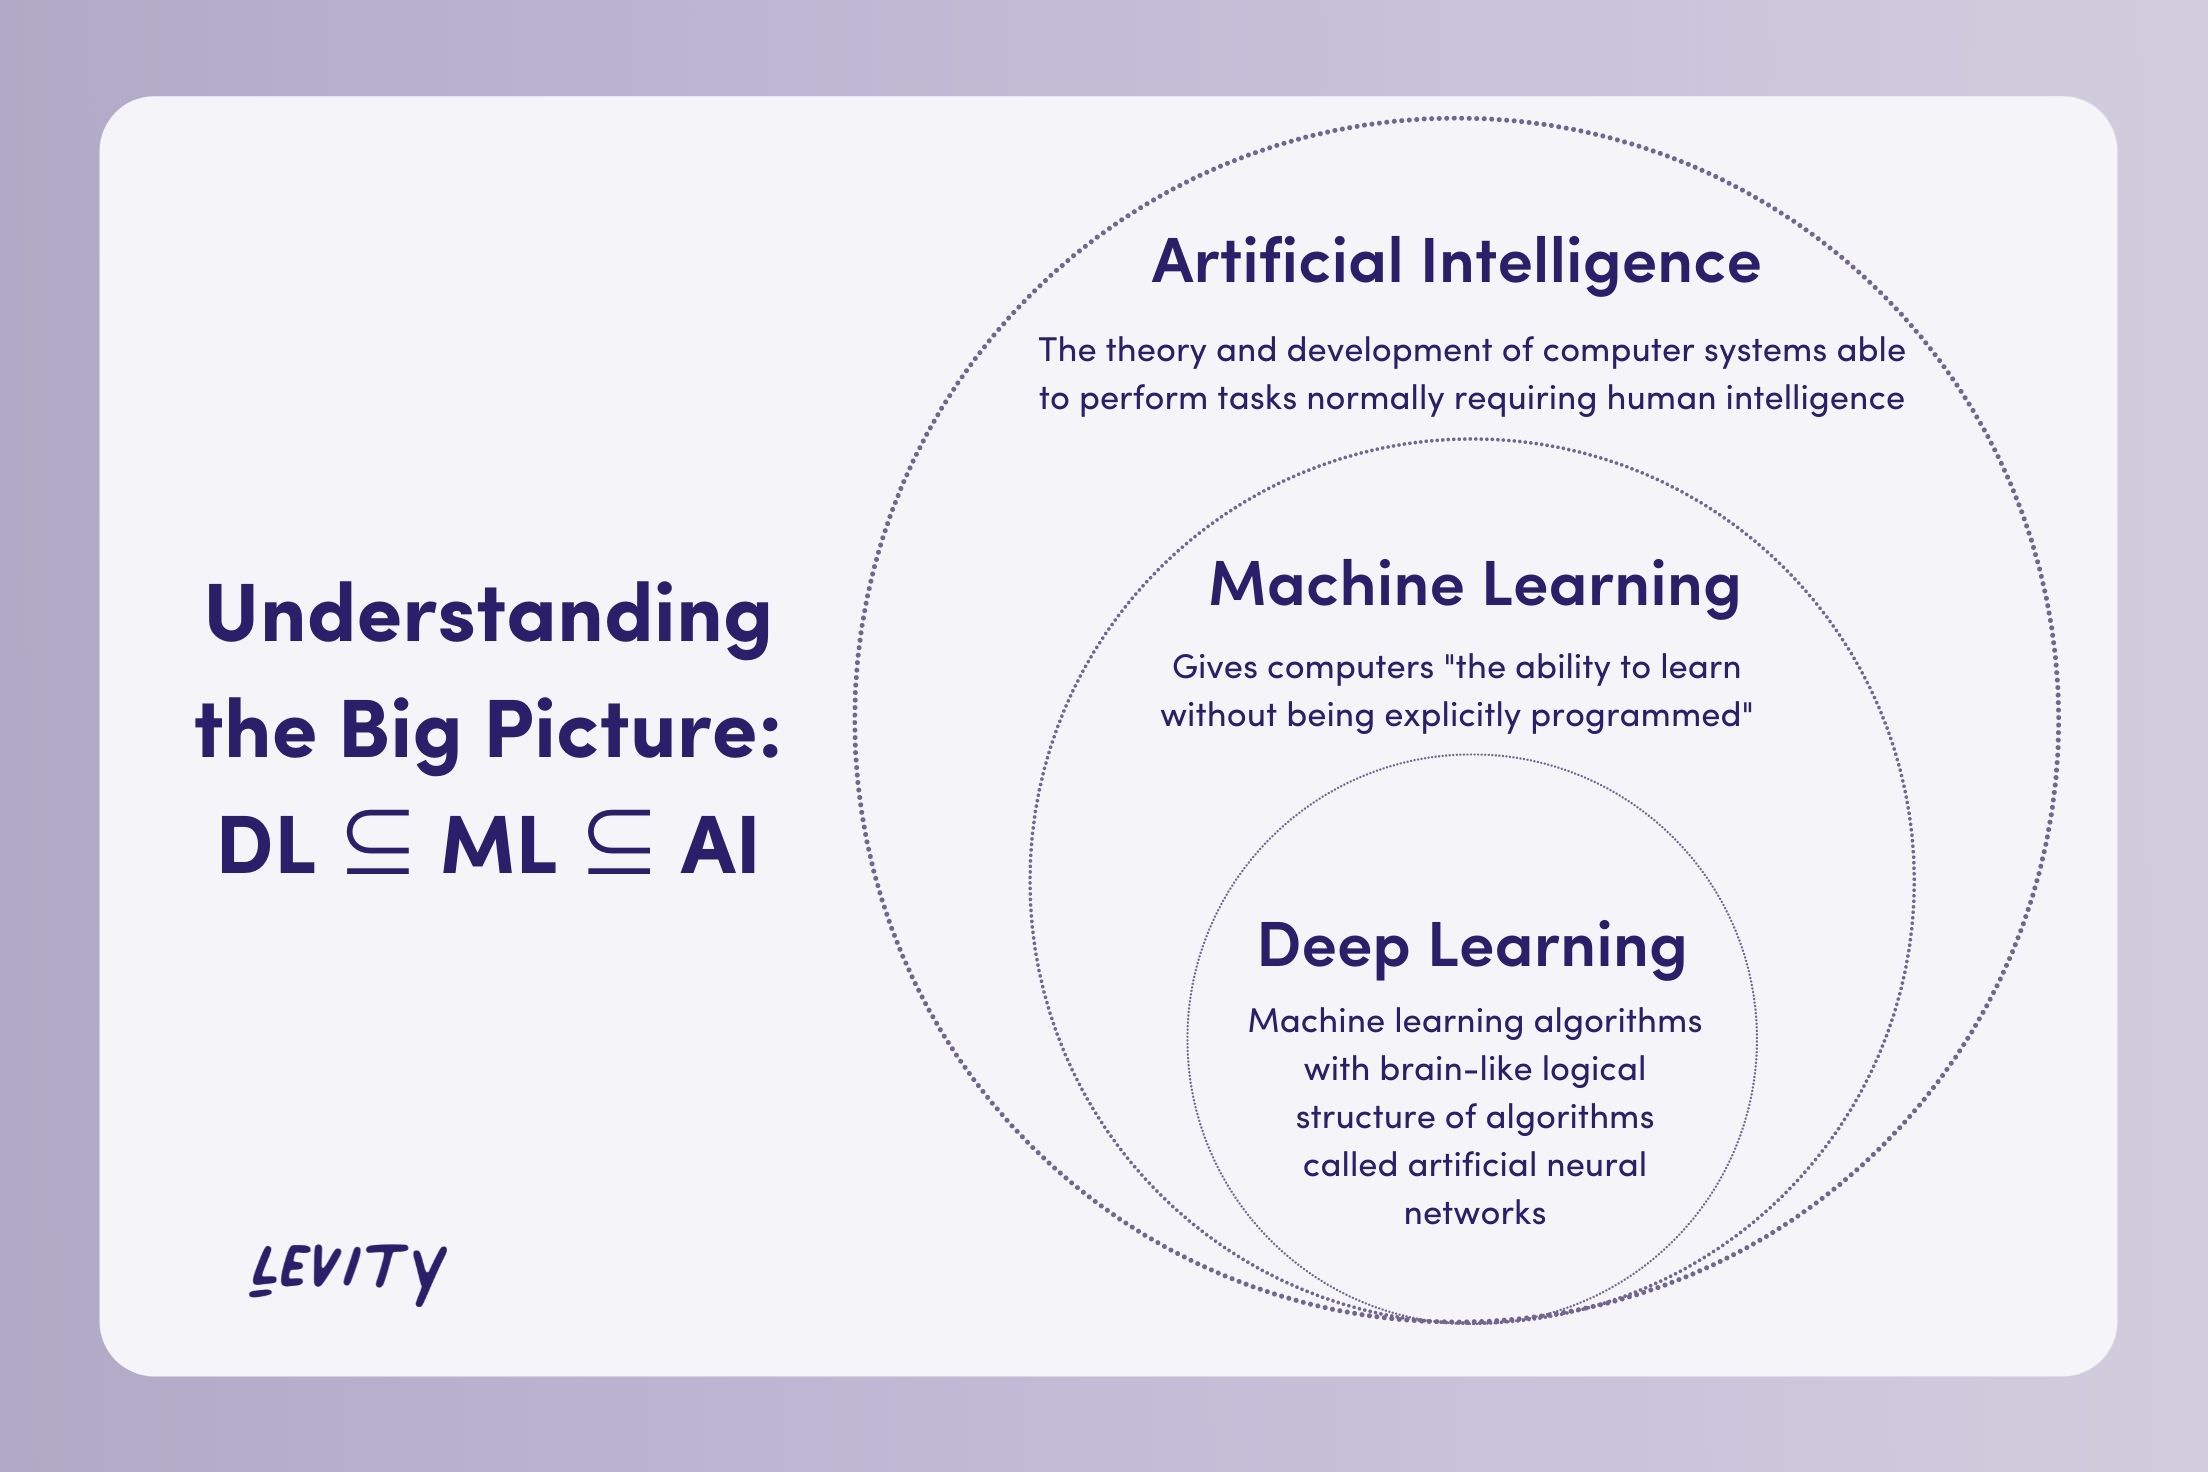 Machine Learning is a subset of AI and deep learning is a branch of machine learning